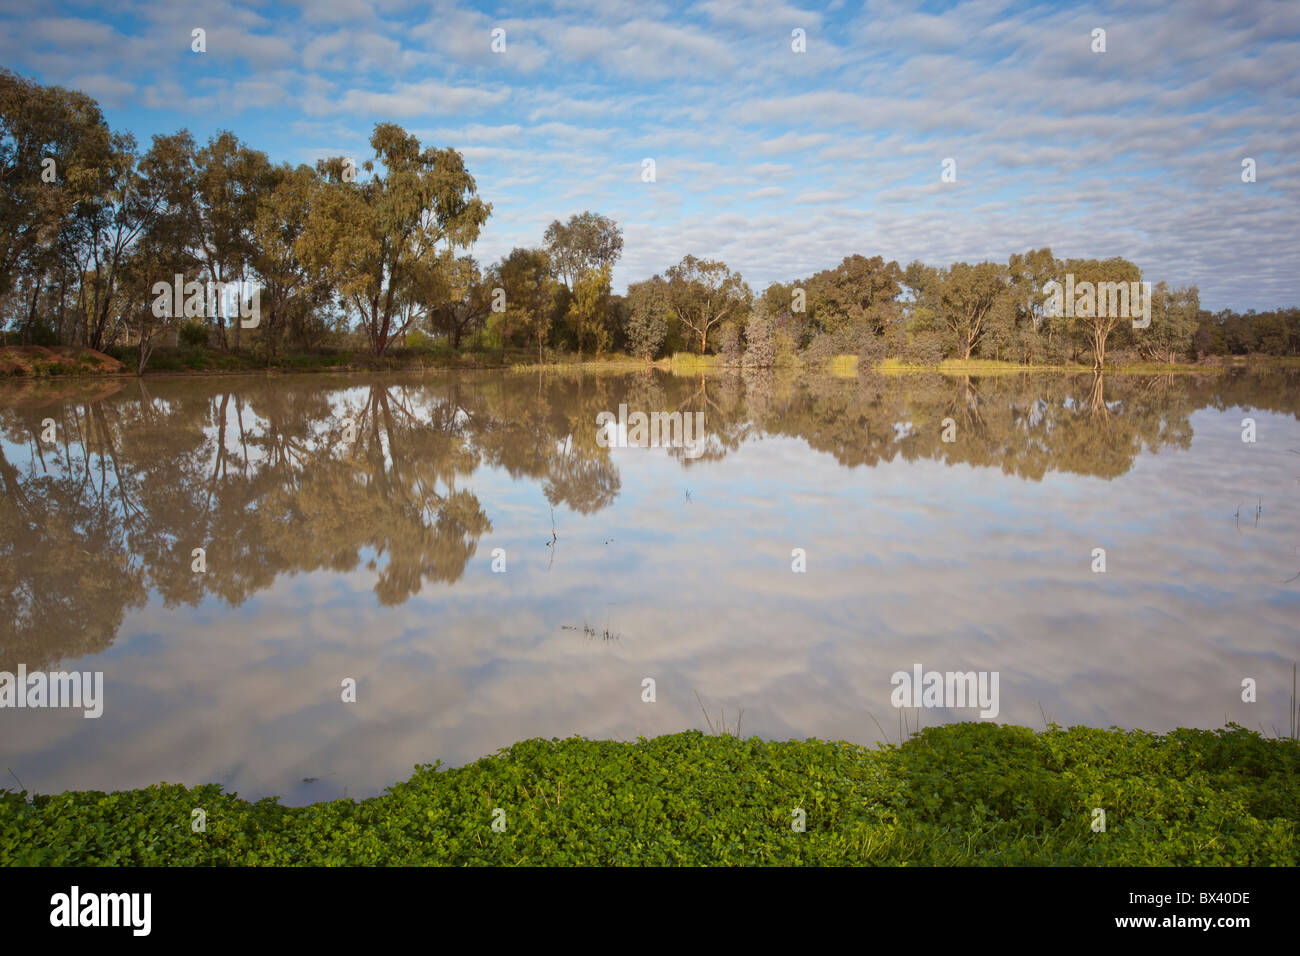 Reflections over the lake at Copi Hollow, Menindee, Broken Hill, New South Wales - Stock Image